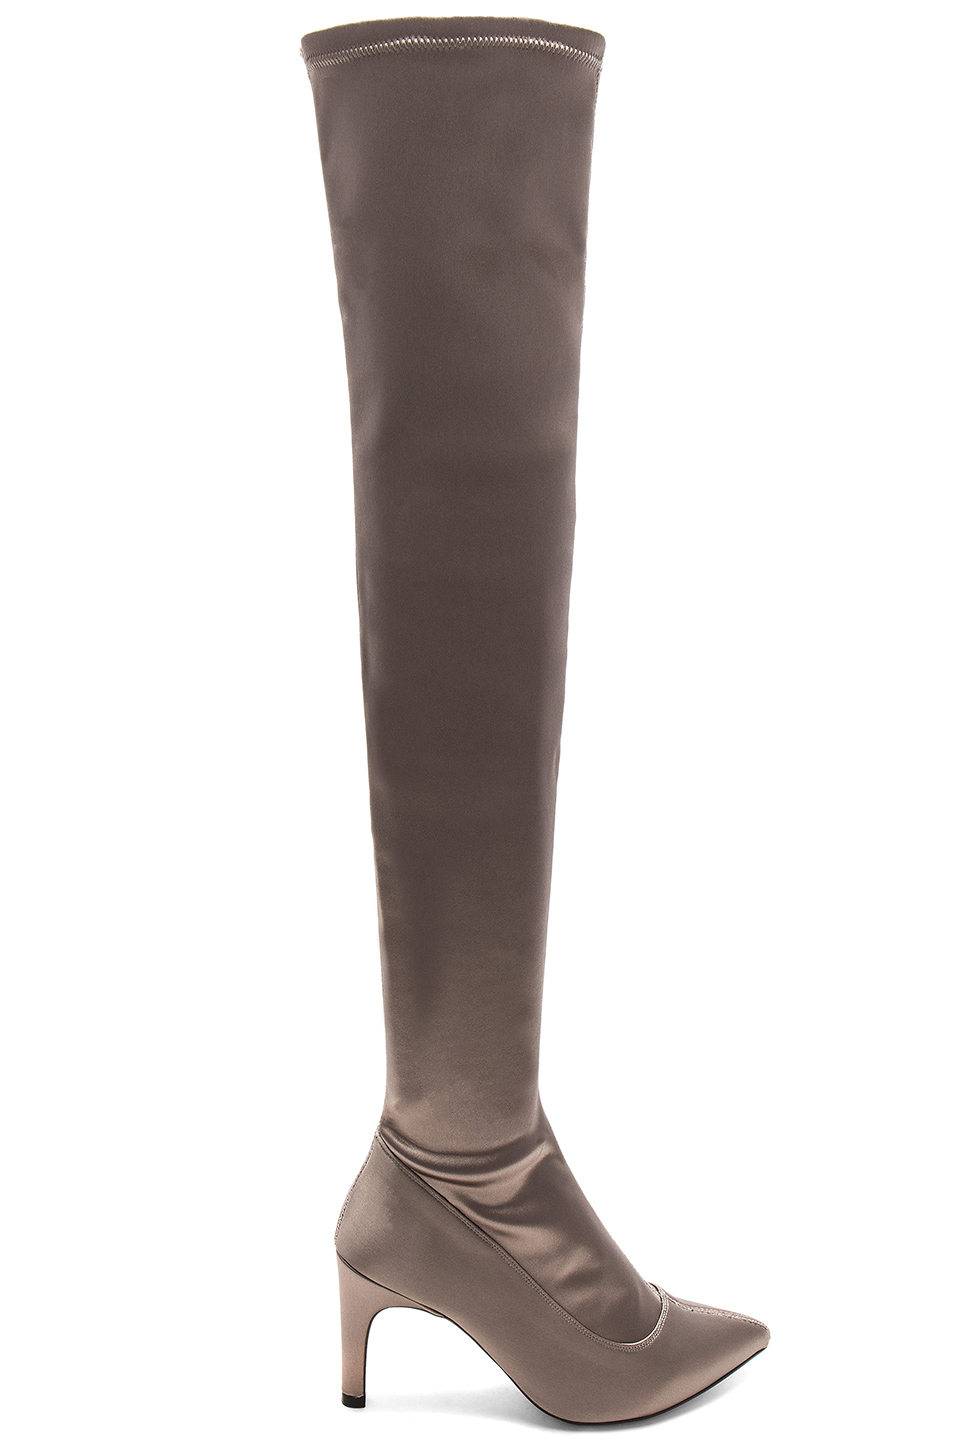 Free People Paris Over The Knee Boot in Grey